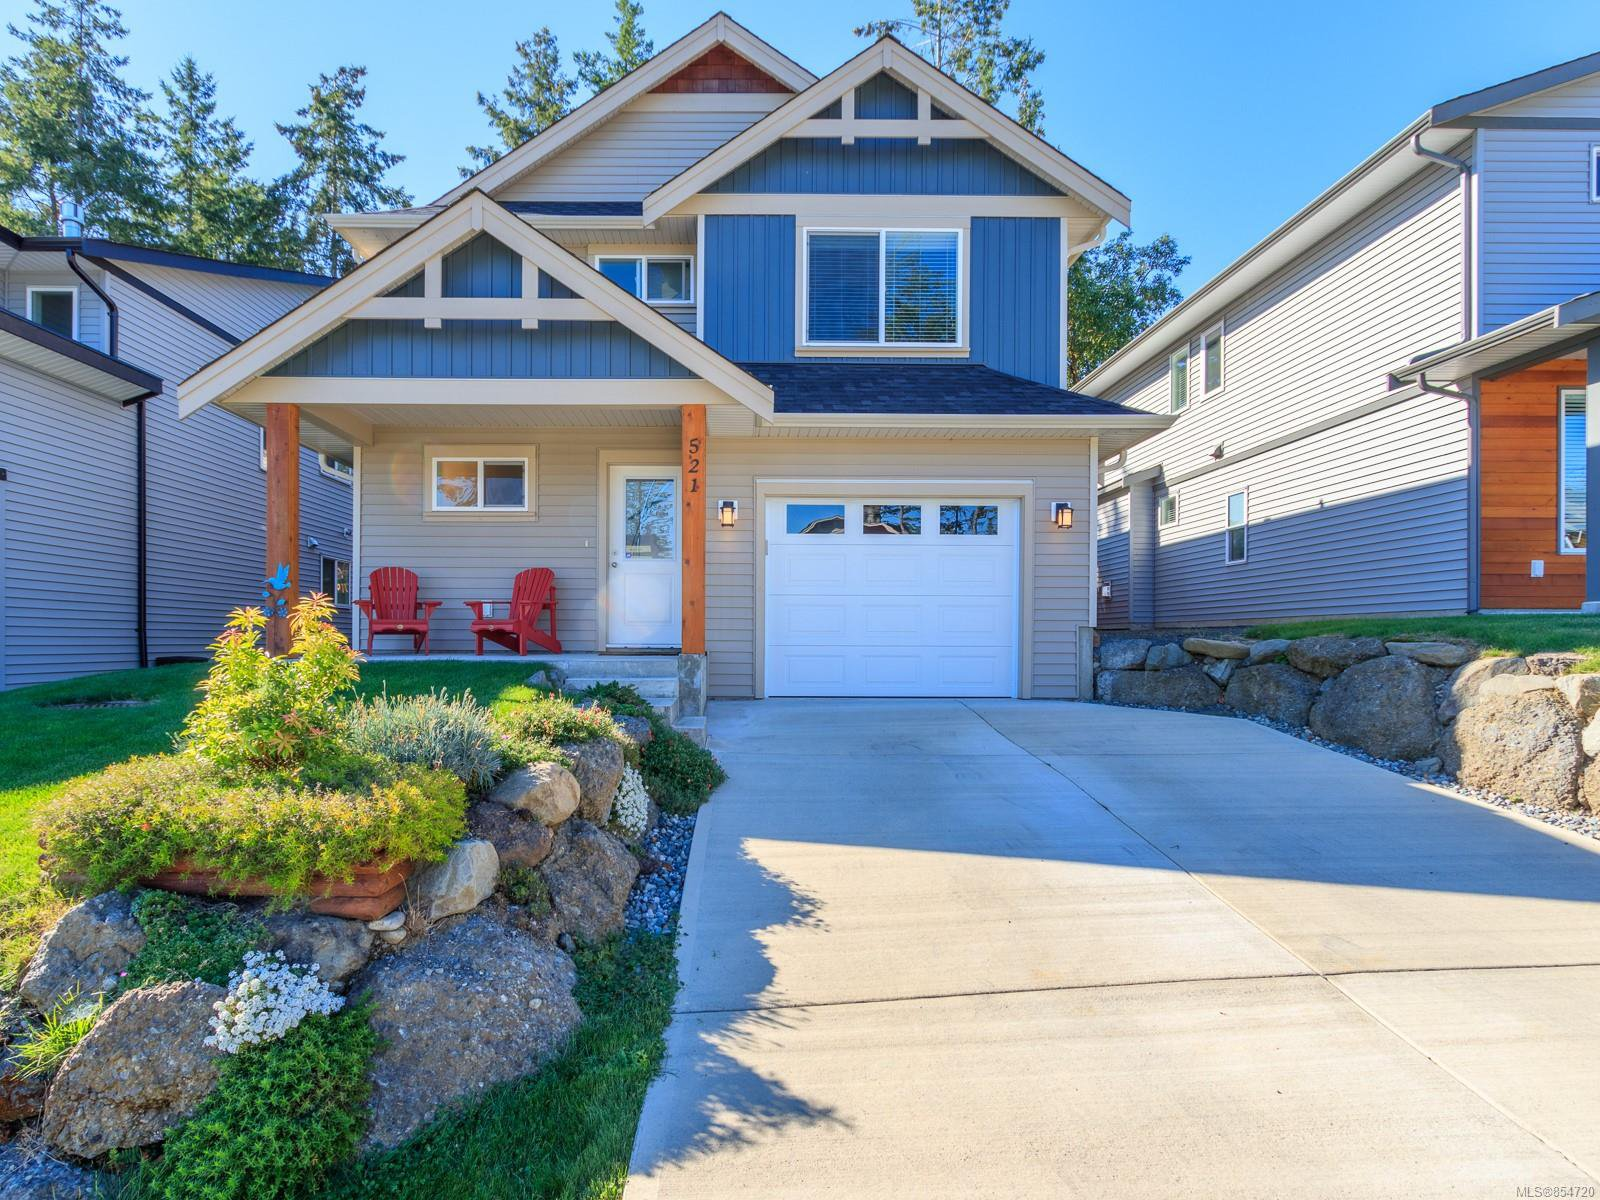 Main Photo: 521 Steeves Rd in : Na South Nanaimo House for sale (Nanaimo)  : MLS®# 854720